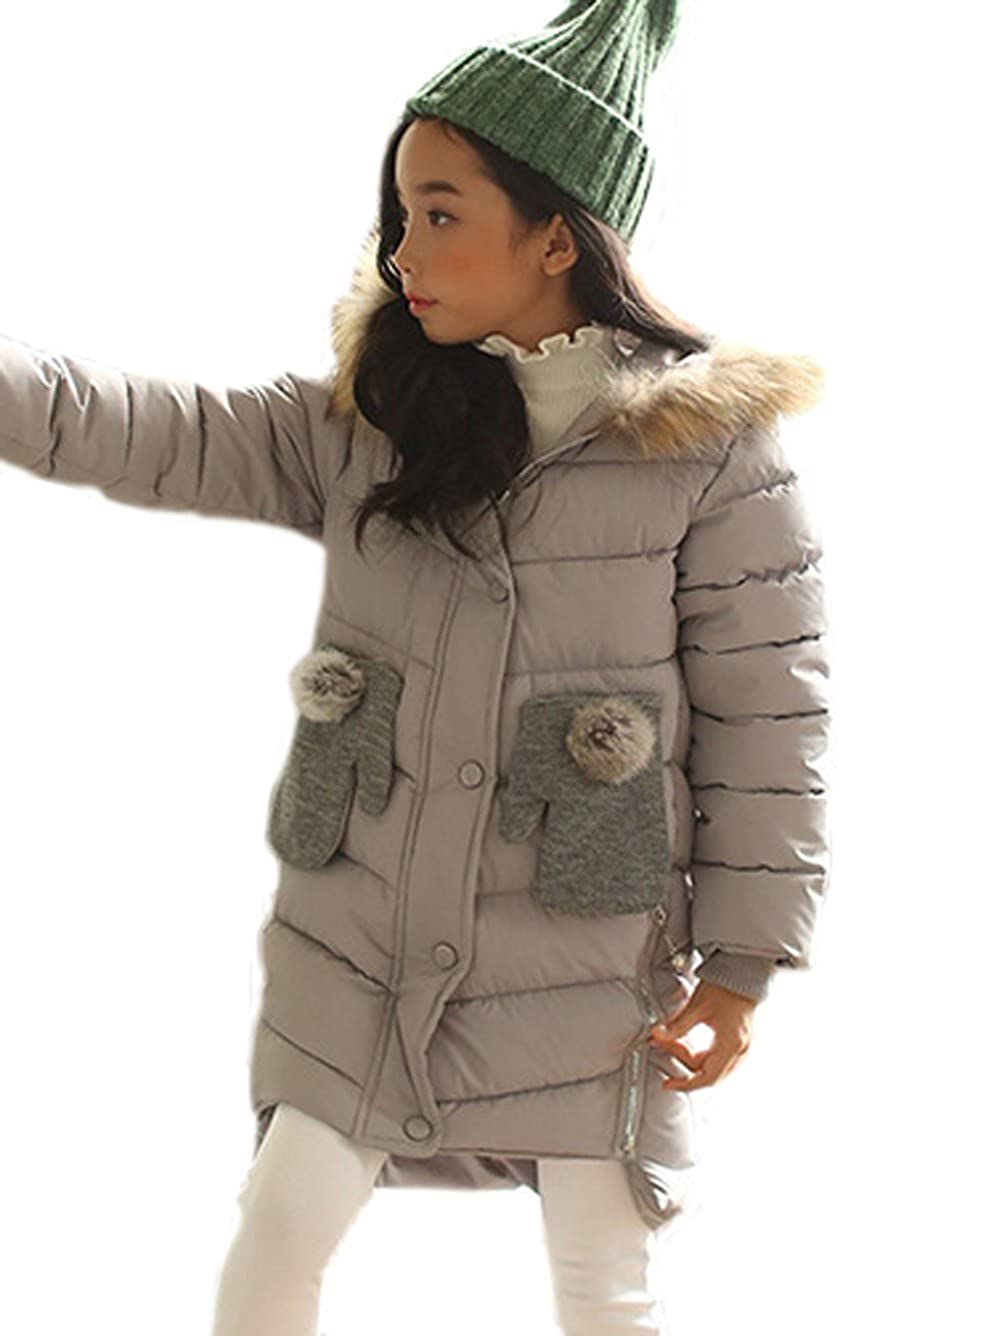 Maison Jardin Piumino Girl Princess Cappotto invernale Autunno Half Long Thick Parka Hooded Fur (4-12 anni)